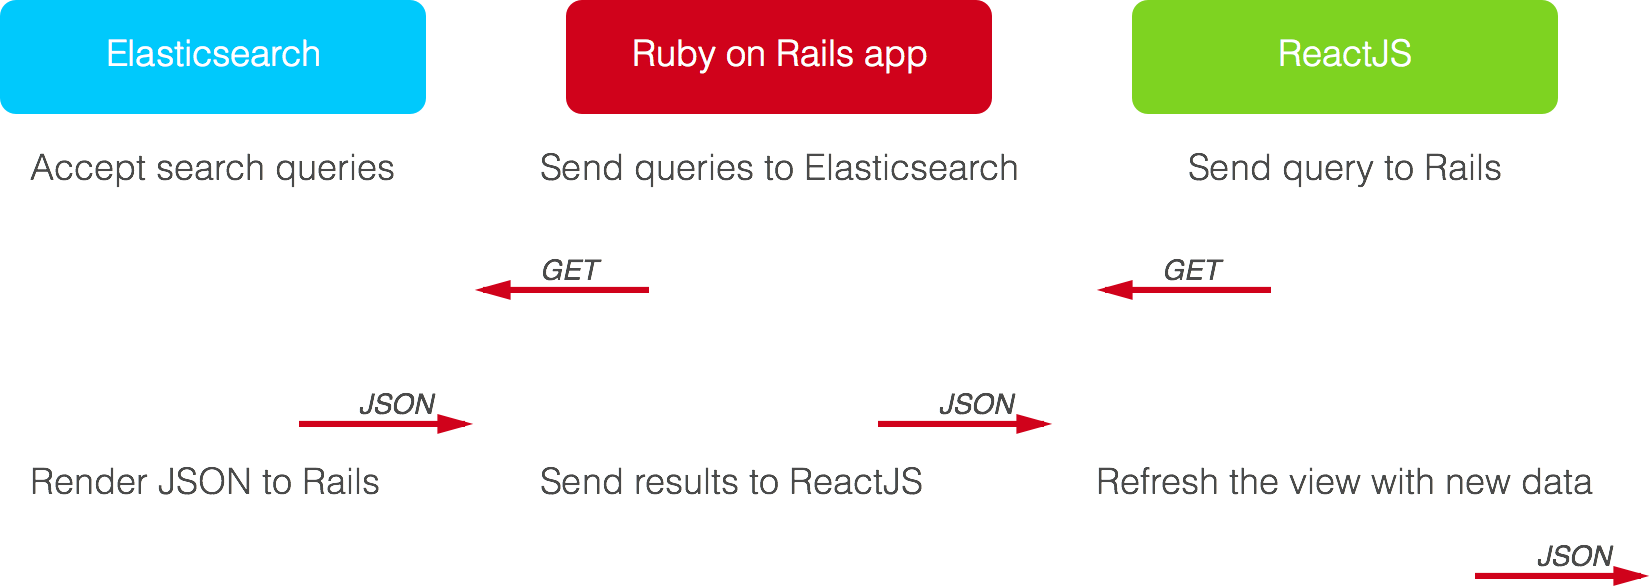 Building a live search page with ReactJS, Rails and Elasticsearch